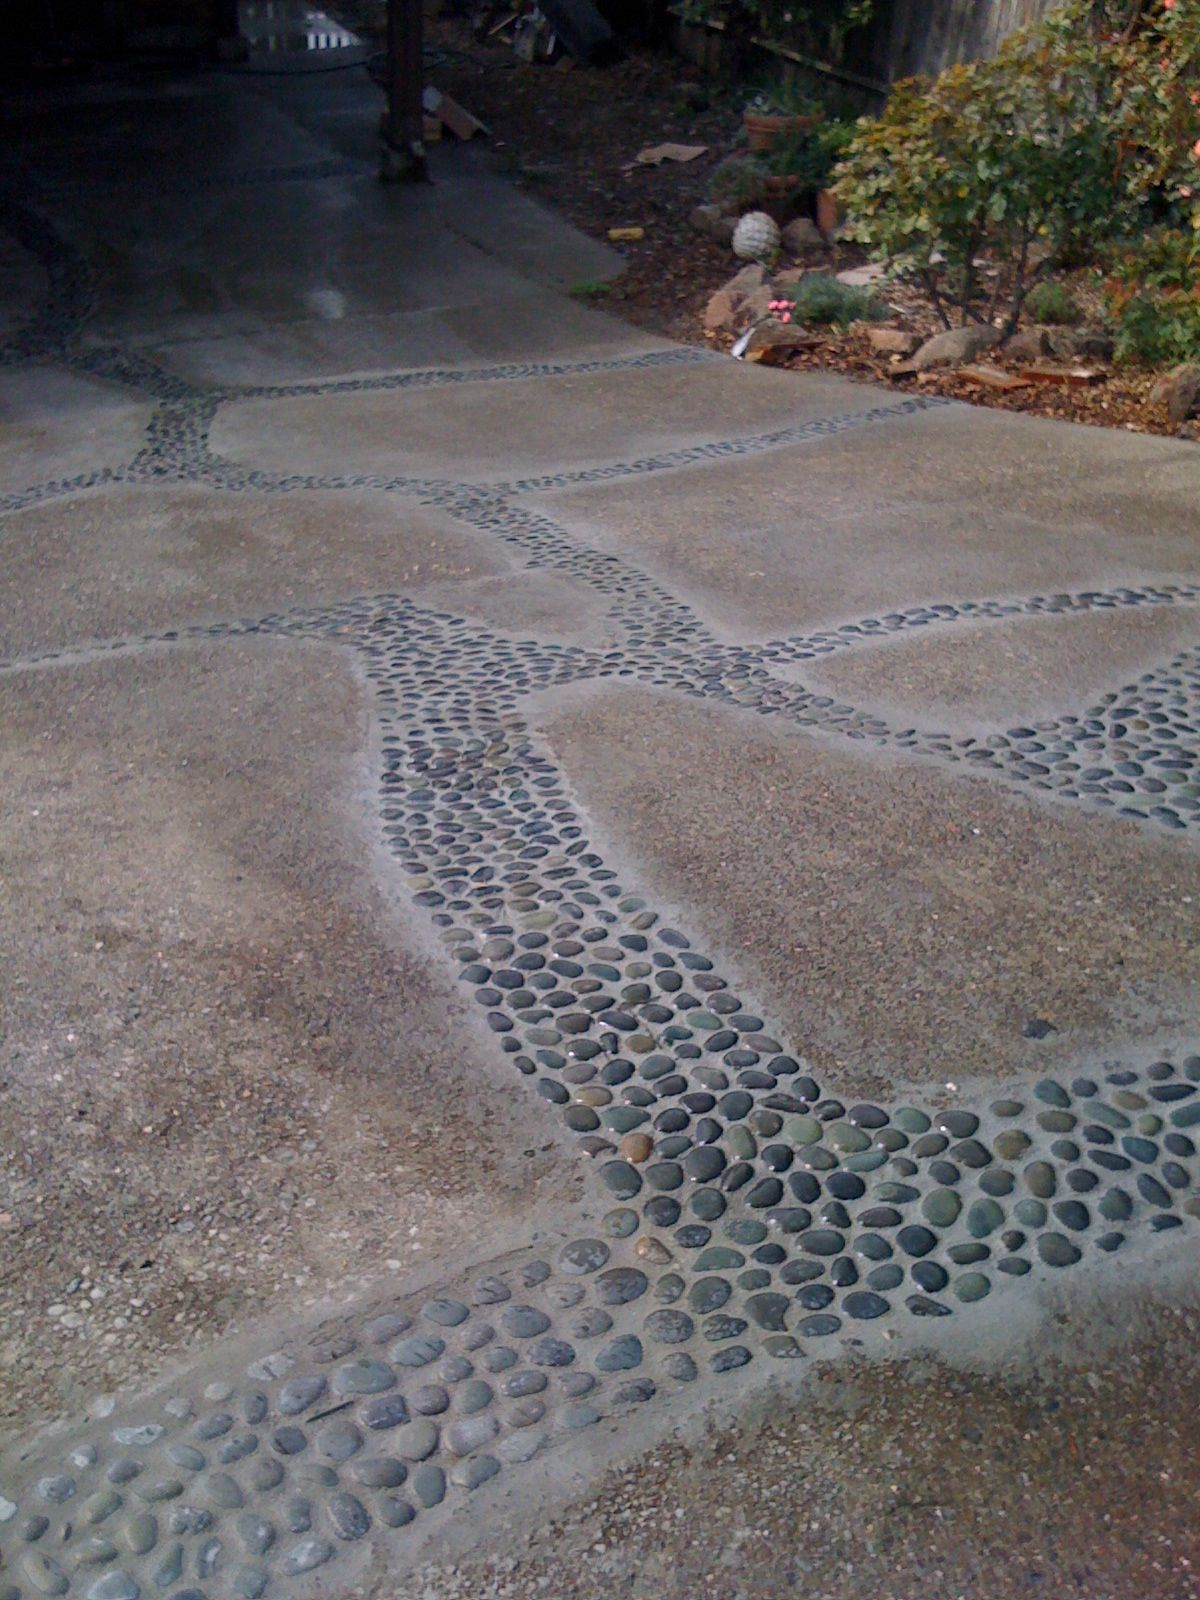 A creative low cost way to deal with a cracking driveway first a creative low cost way to deal with a cracking driveway first you widen the cracks a little then add reinforcincing rebar and concrete top with rocks solutioingenieria Choice Image